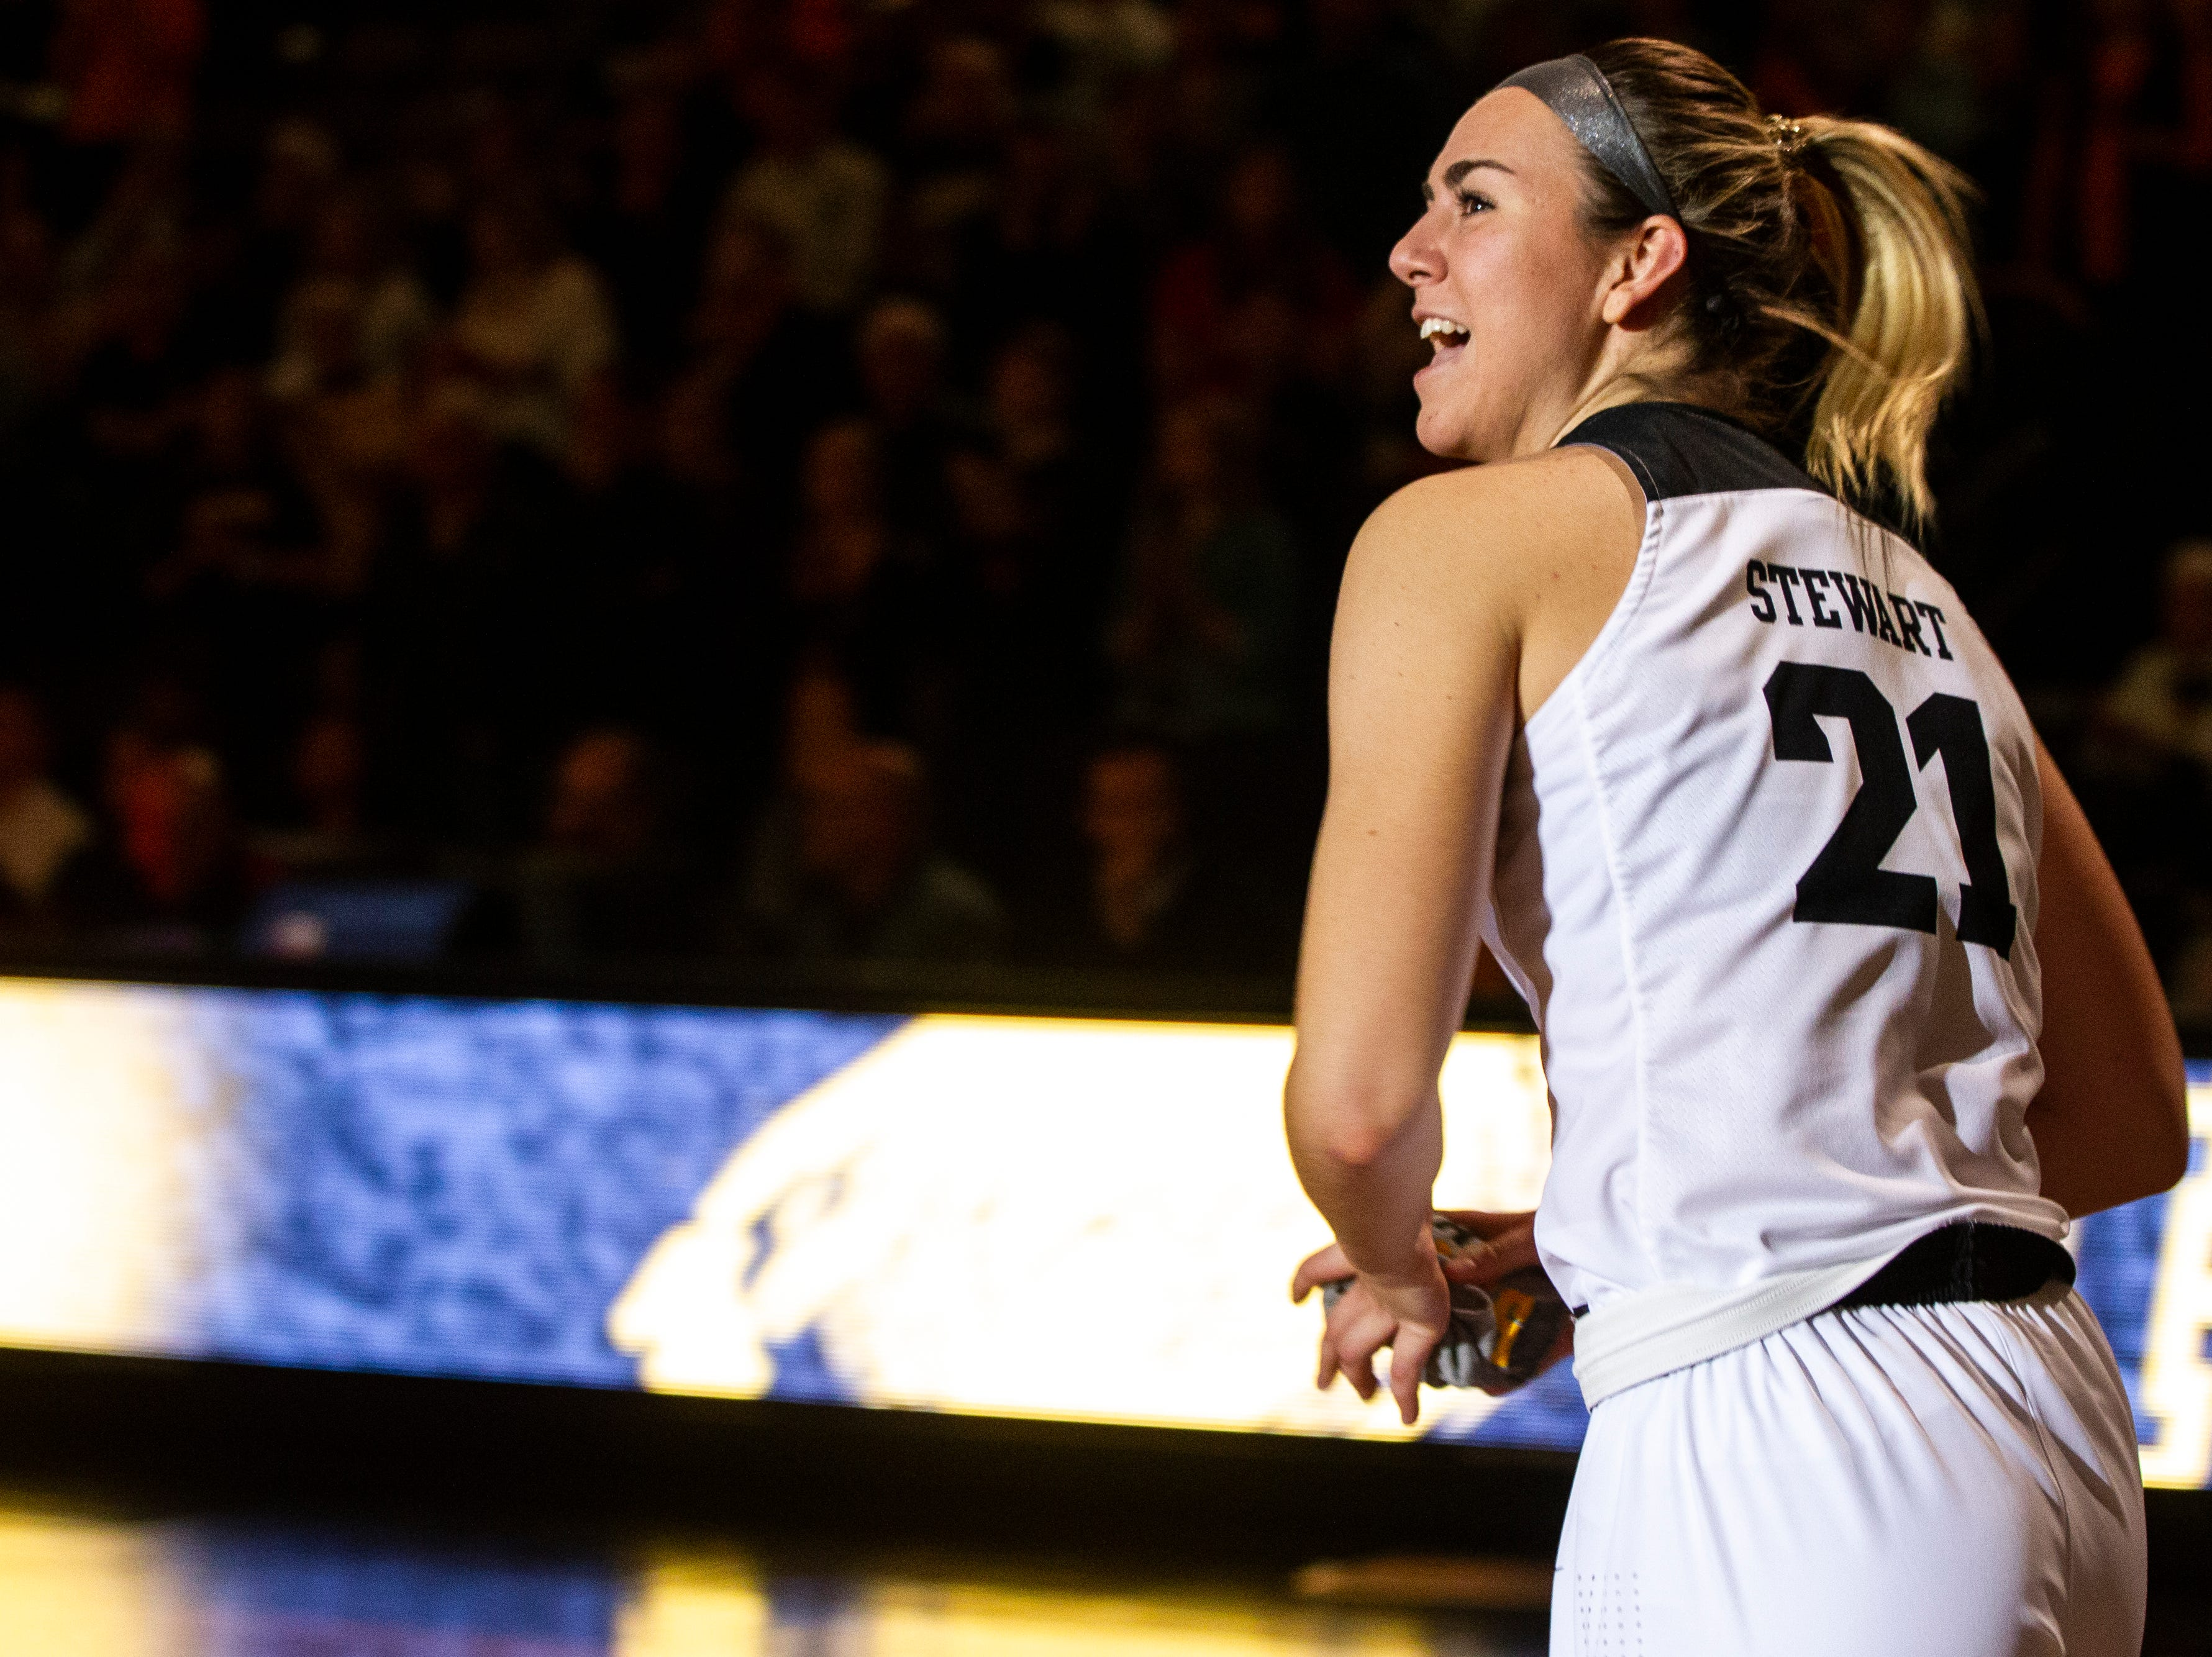 Iowa forward Hannah Stewart (21) is introduced during an NCAA women's basketball game on Saturday, Nov. 17, 2018, at Carver-Hawkeye Arena in Iowa City.